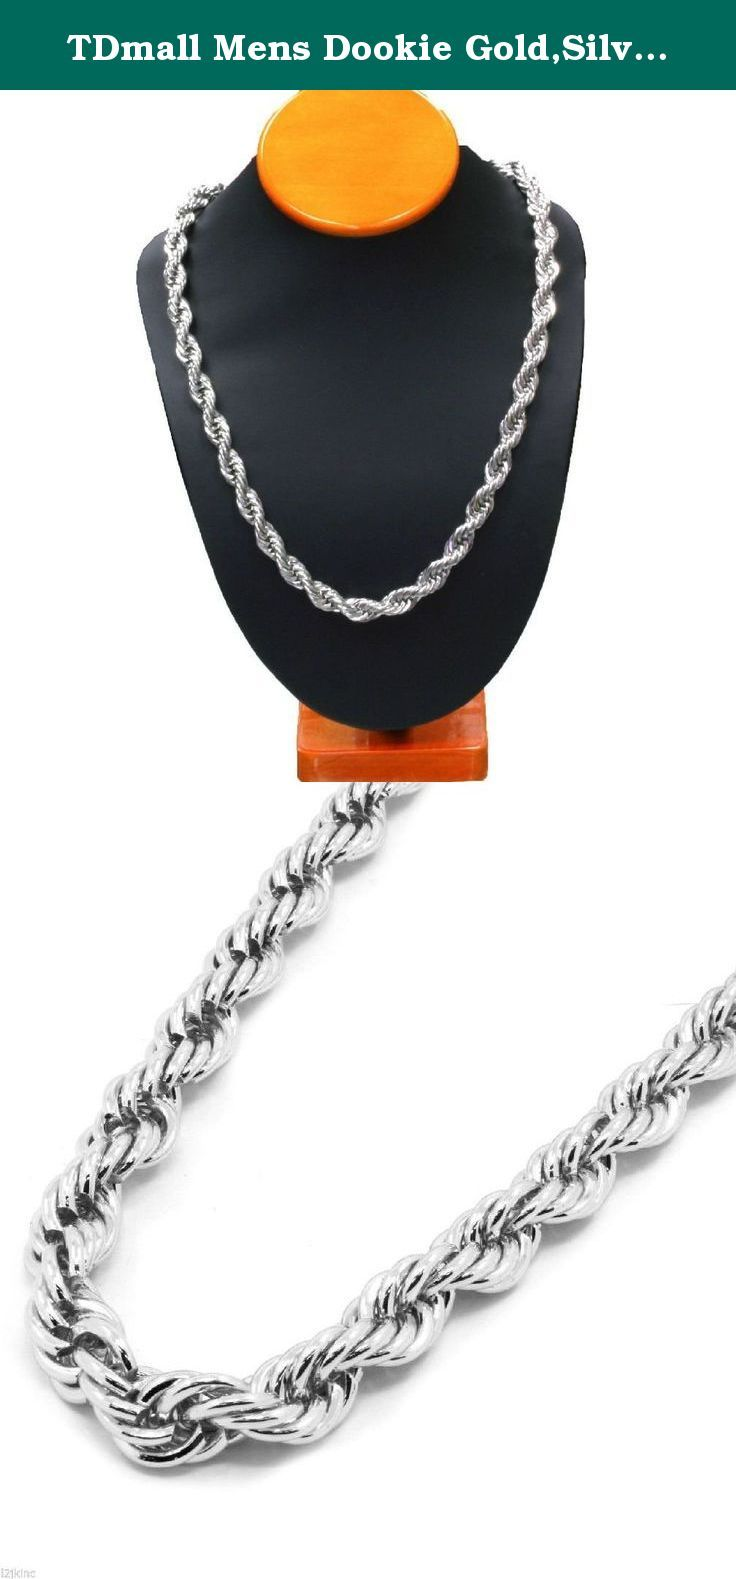 Tdmall Mens Dookie Gold Silver Black Plated Steel Necklace Rope Chain 10mm 30 Inch Rope Chain14k Plated Stainless Ste Steel Necklace Chains Necklace Necklace